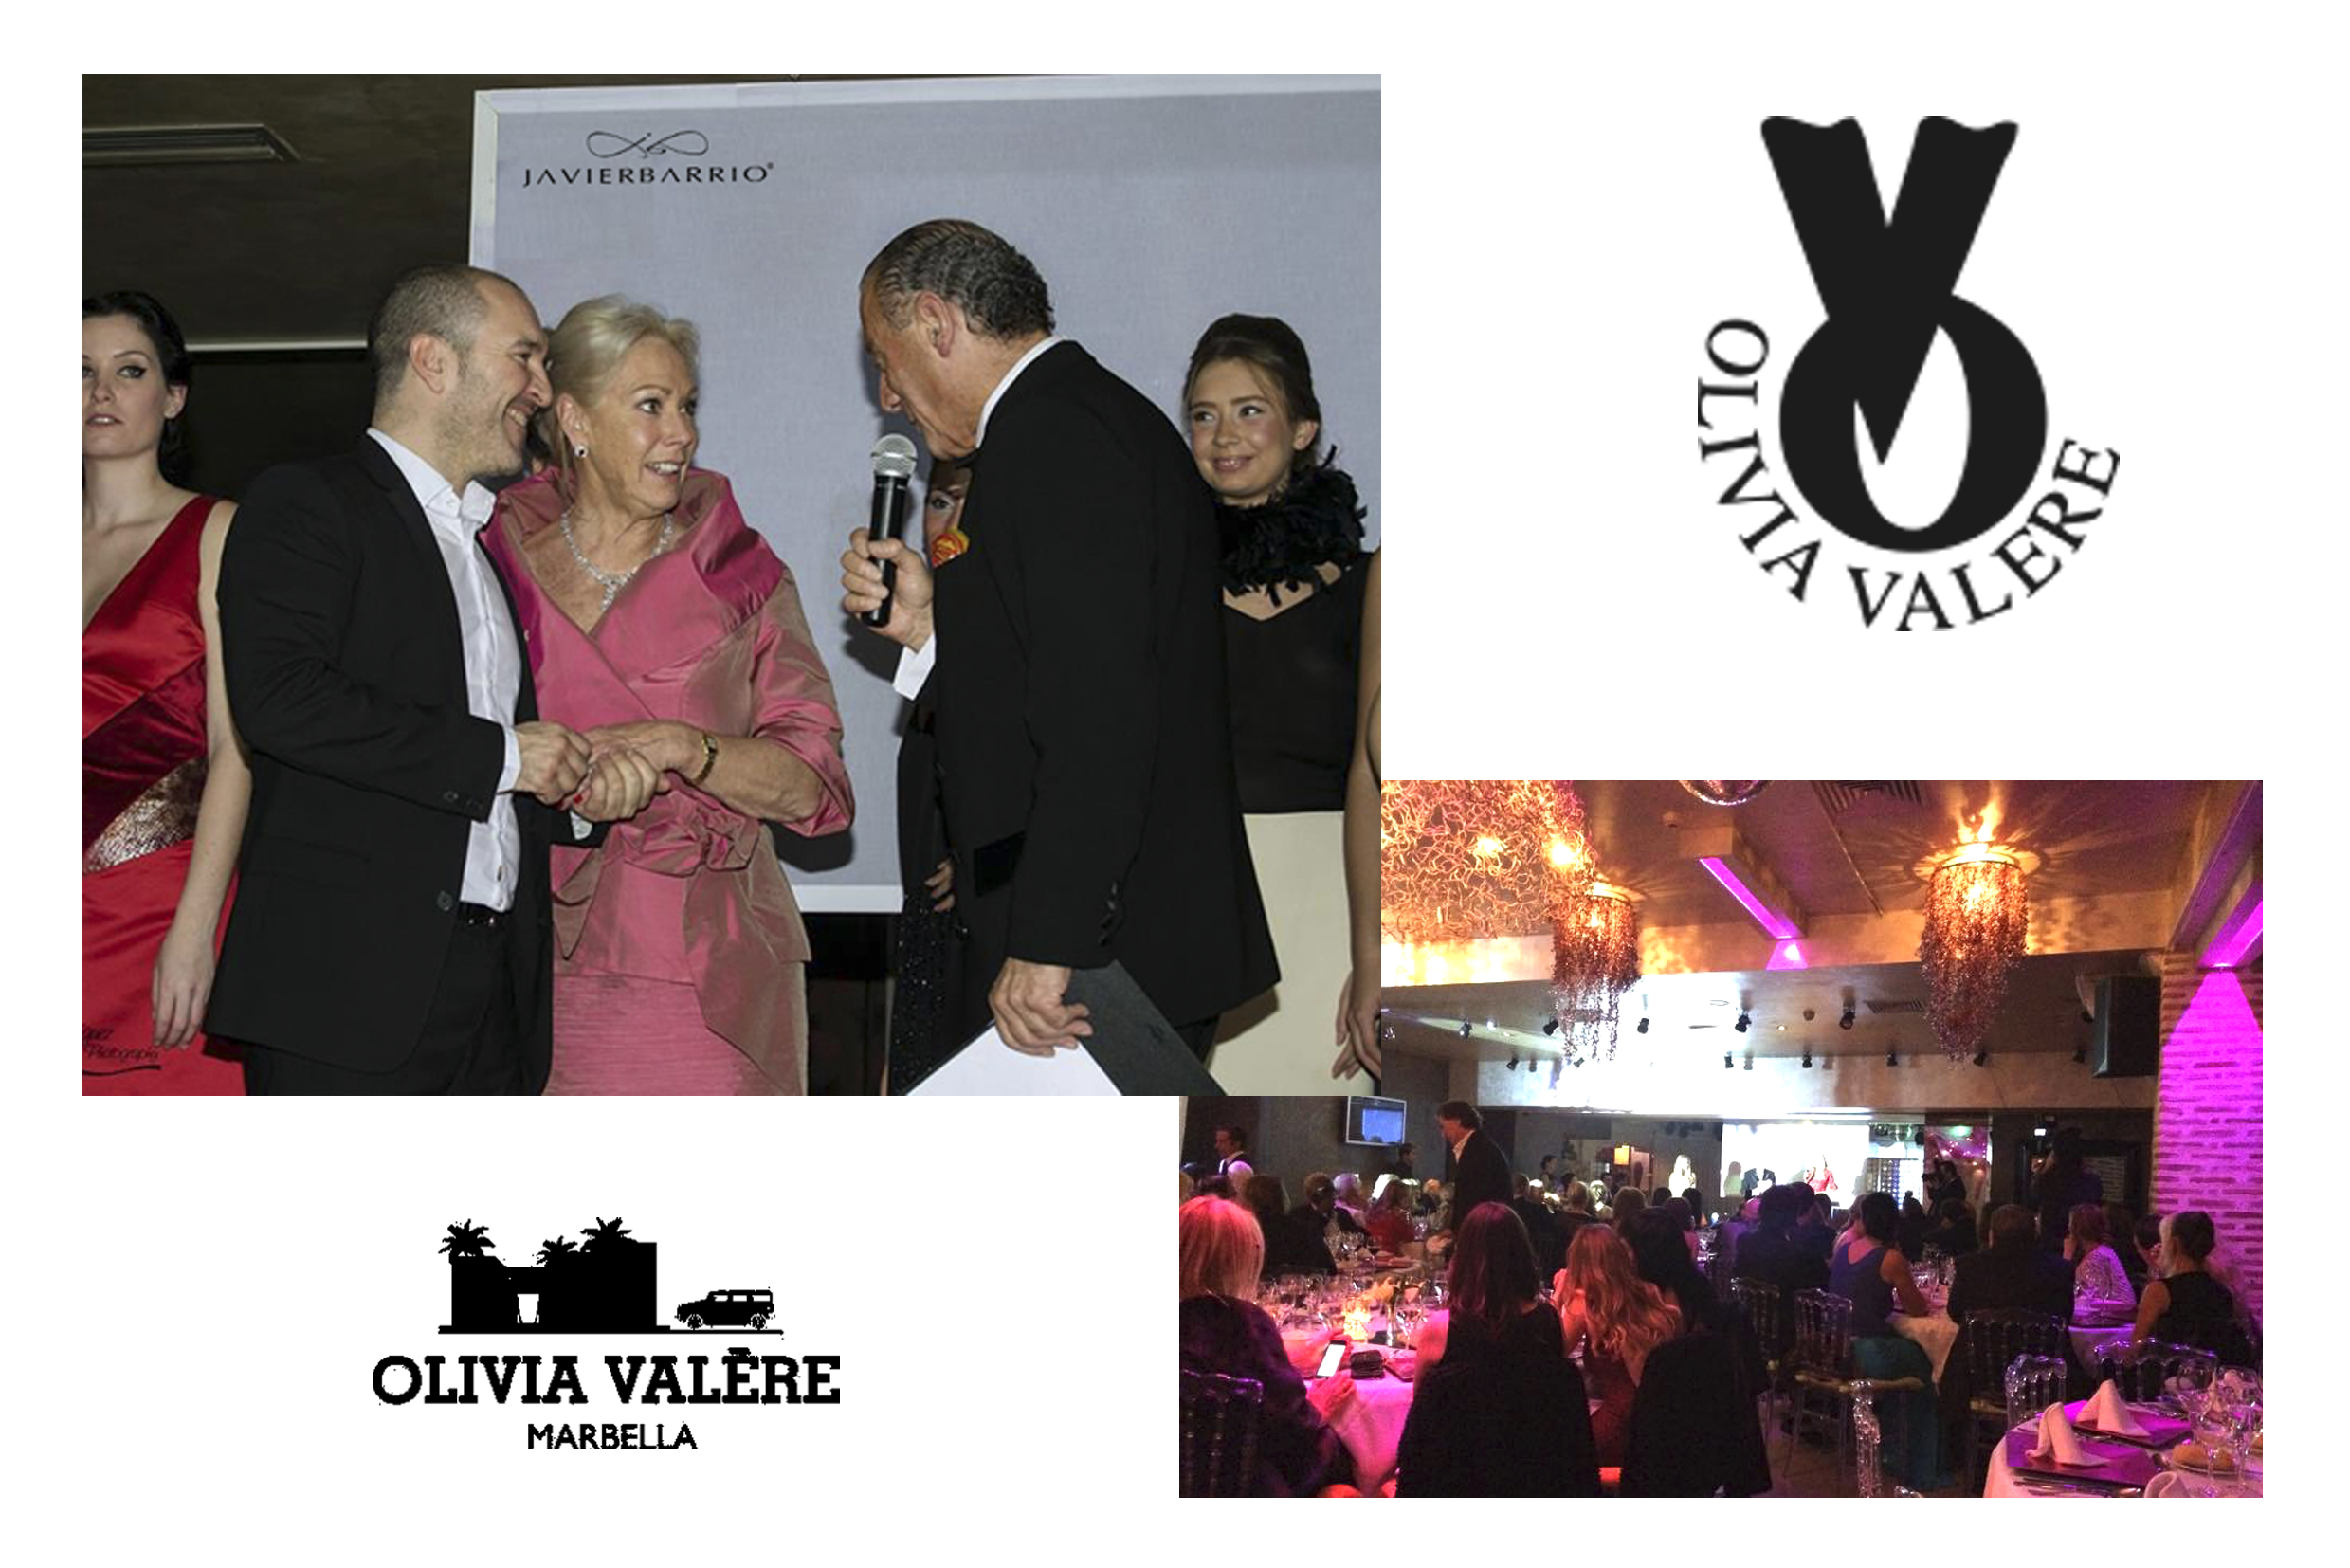 olivia - Oscar's Awards Gala at Olivia Valere and Babiliona, in Marbella